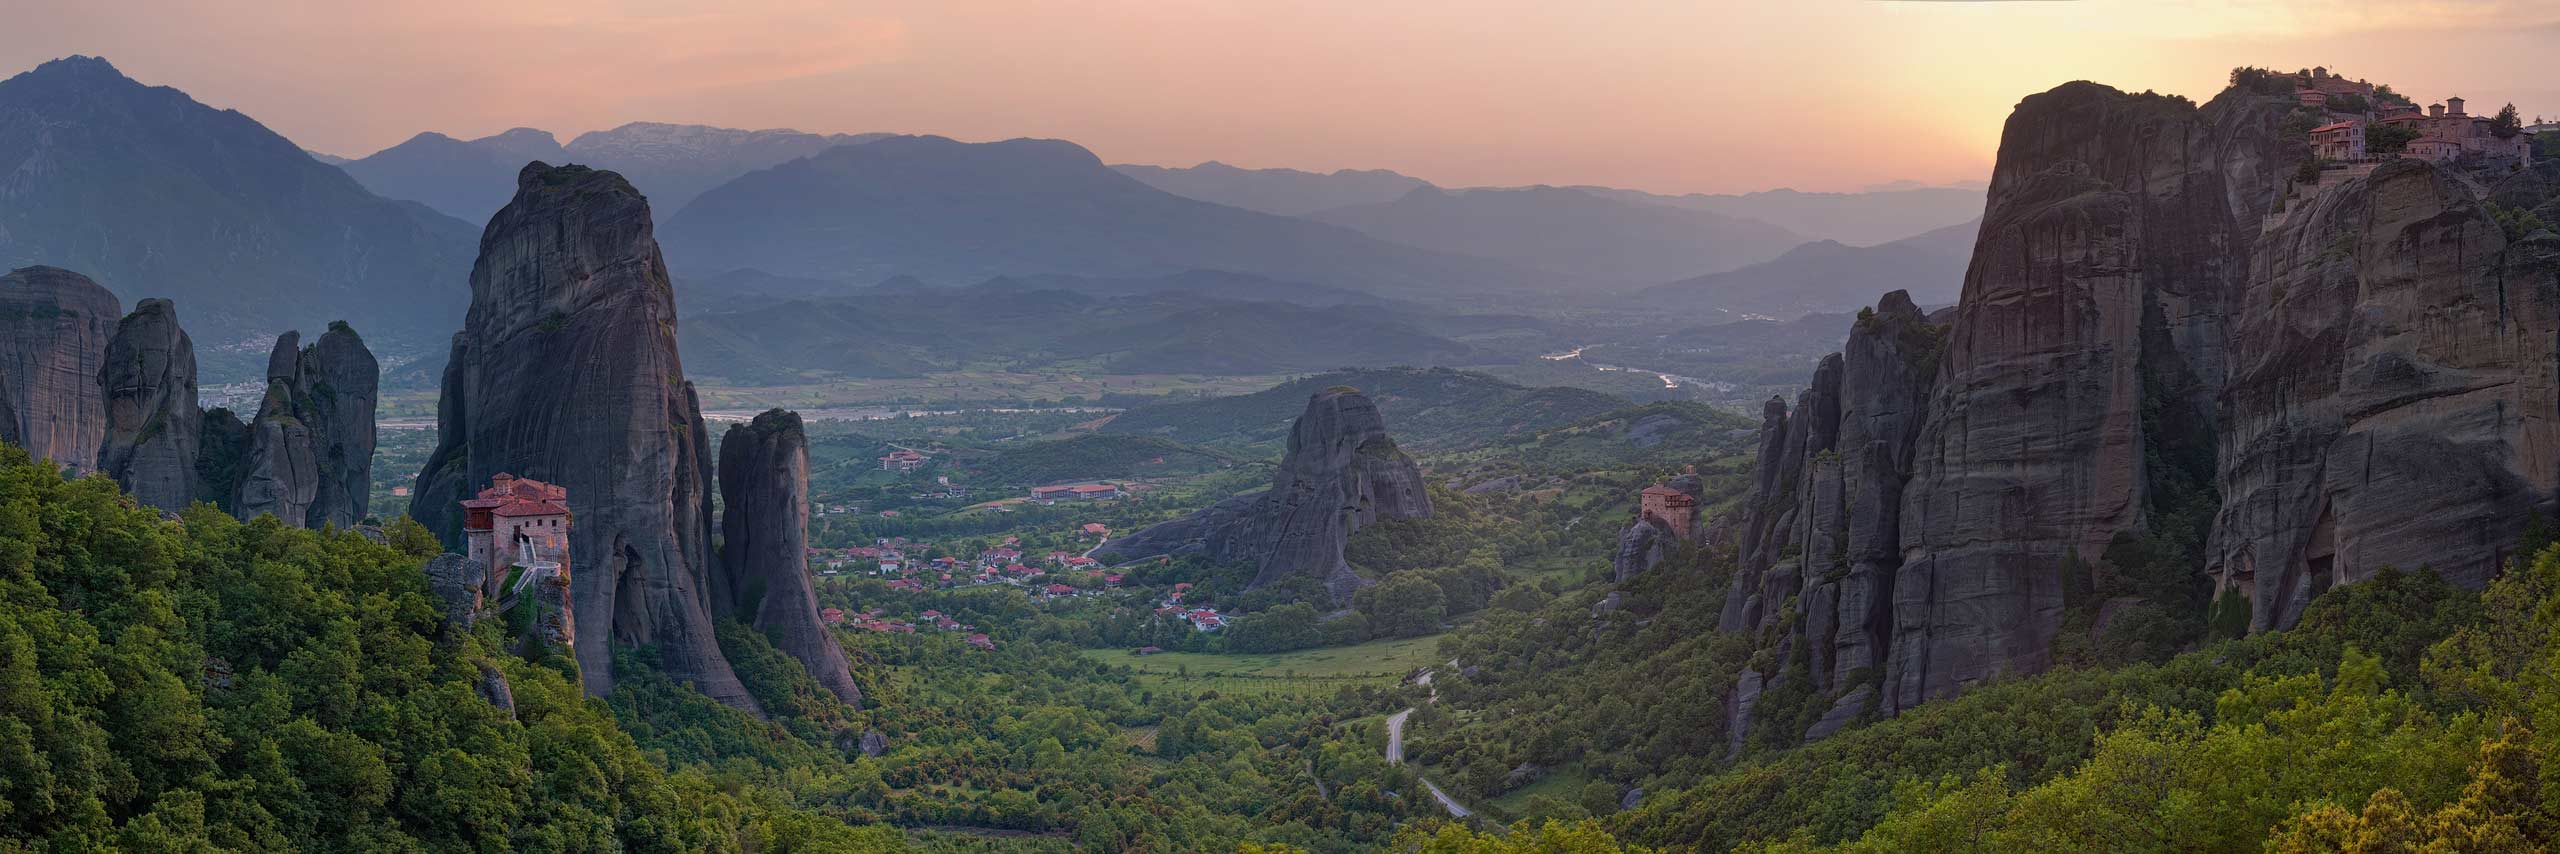 Roussanou and St. Nicholas Anapafsas Monasteries with town of Kastraki on Thessaly valley floor at sunset. Meteora, Greece - Meteora-Monasteries-Greece - Mike Reyfman Photography